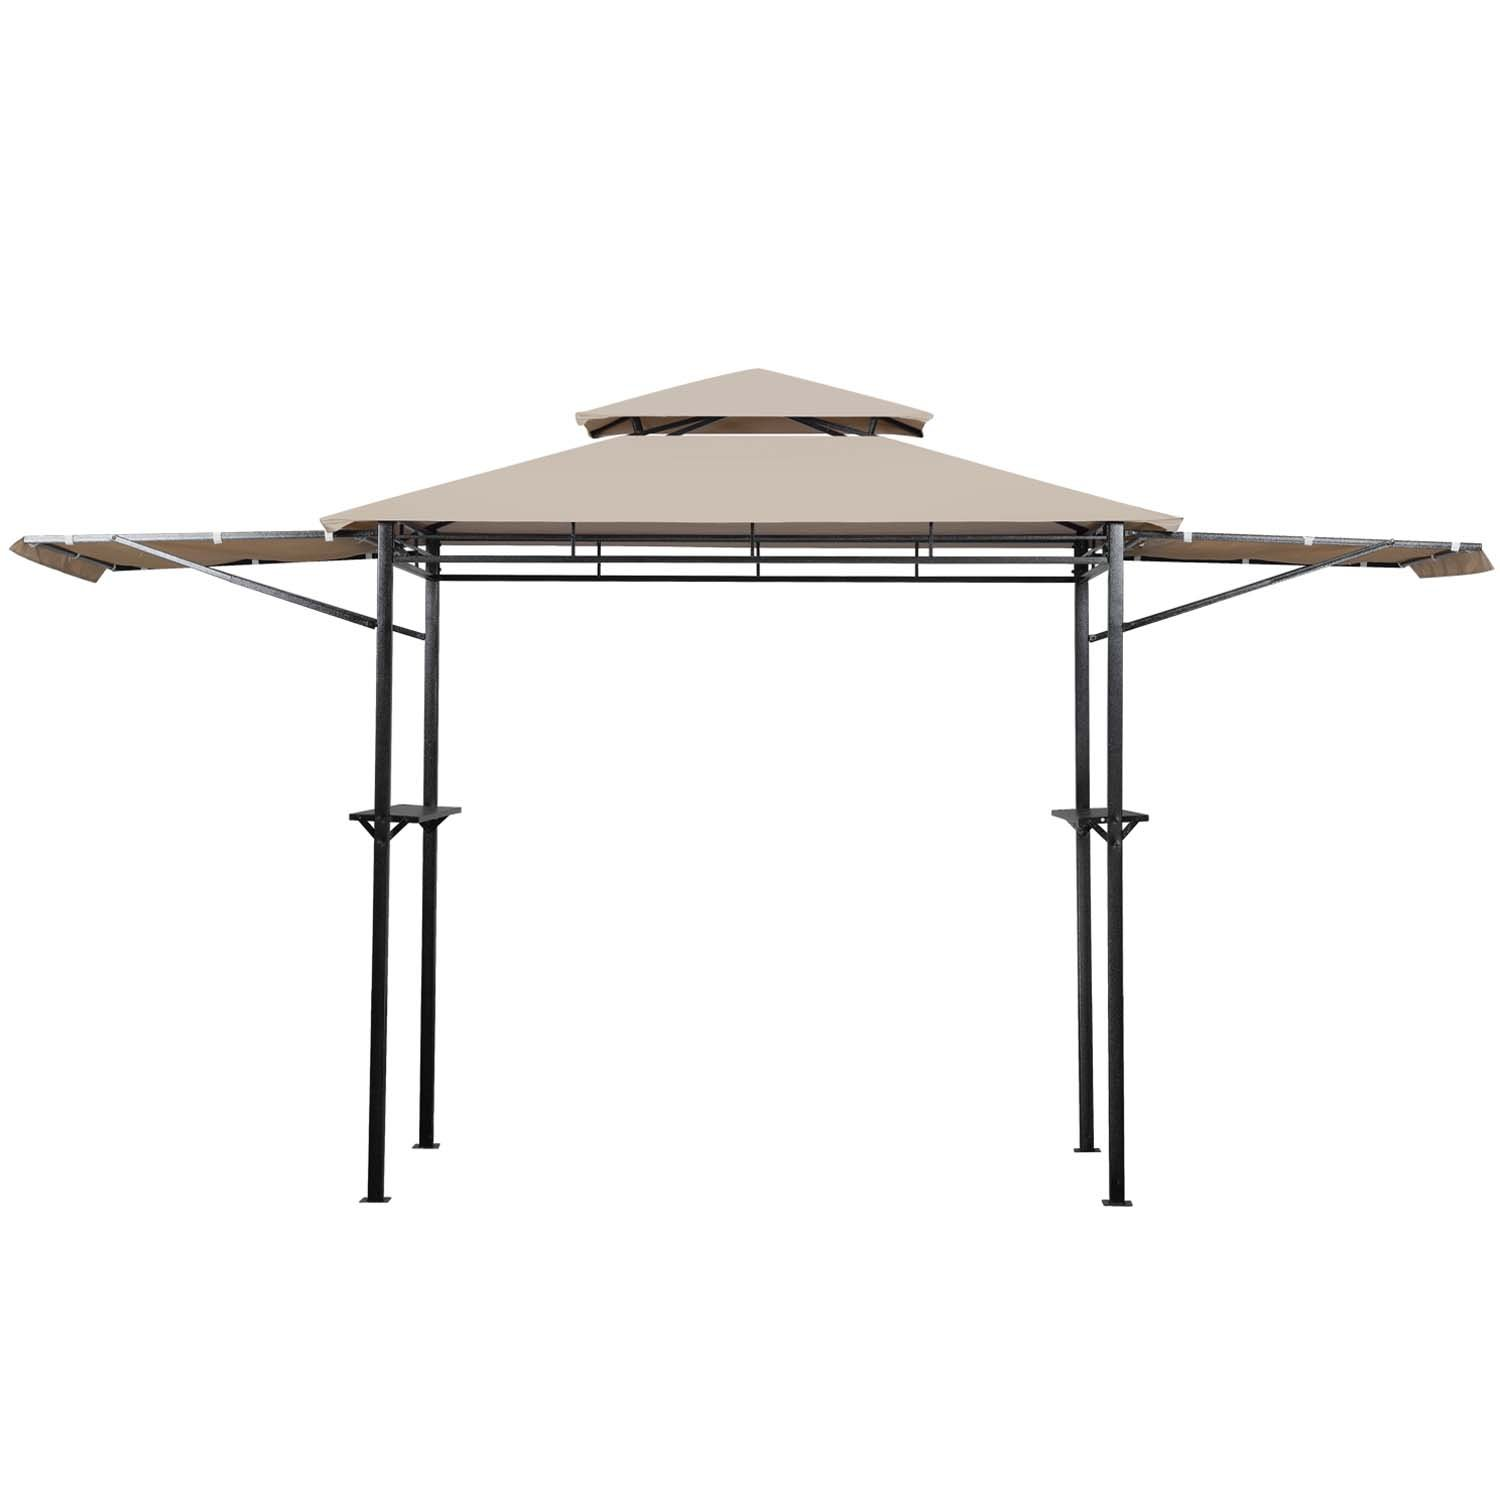 8' x 4' 2-Tier Grill Gazebo Canopy BBQ Outdoor Patio Shelter